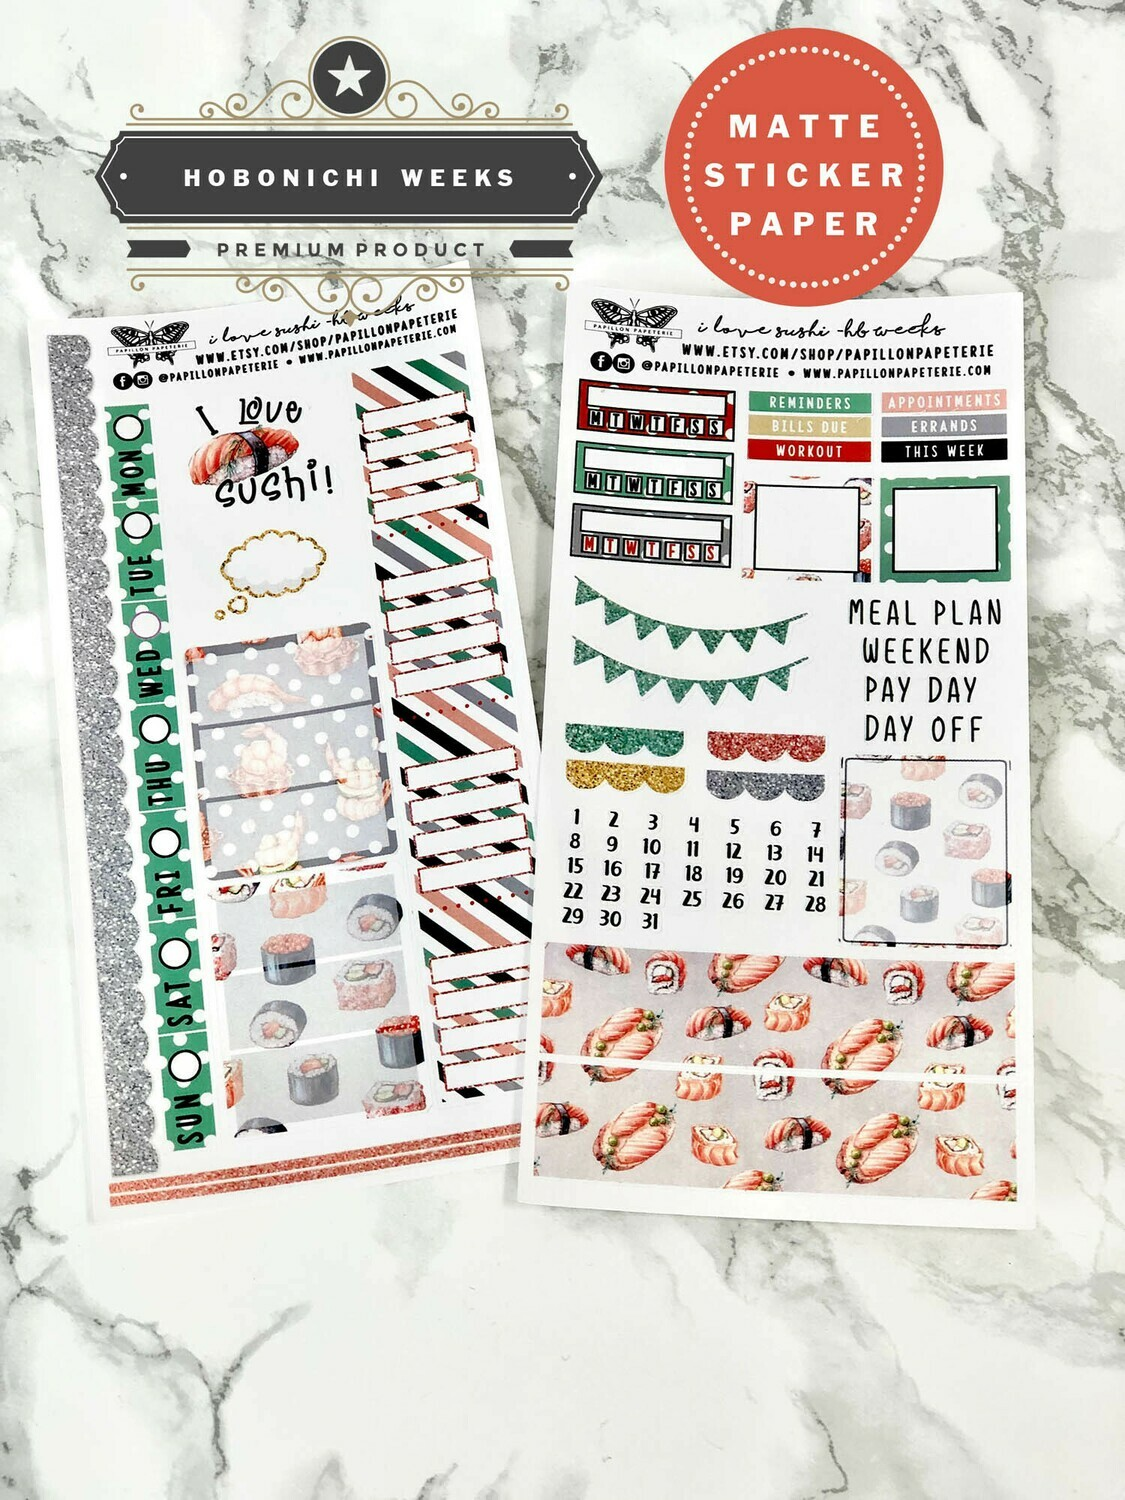 I Love Sushi Weekly Sticker Kit   Planner stickers for Hobonichi Weeks